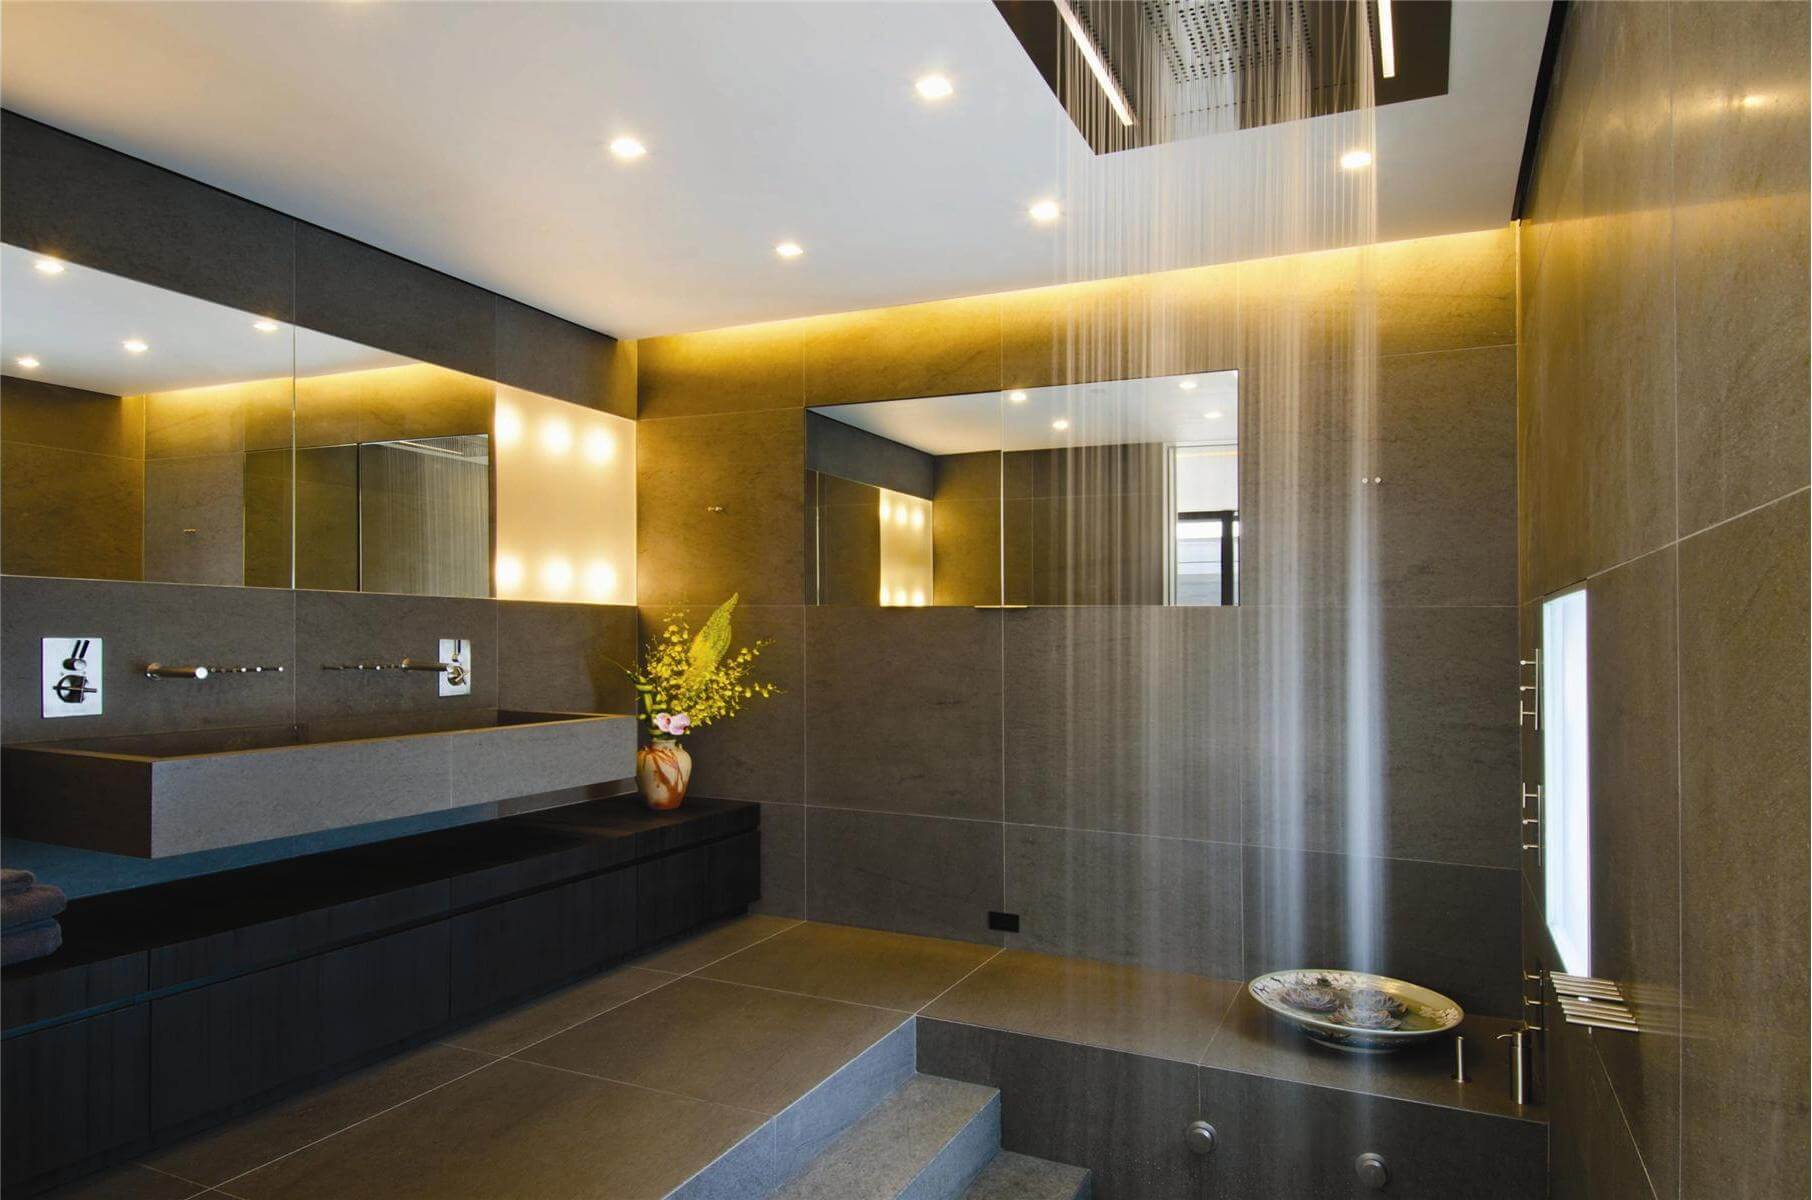 Bathroom Design Ideas Images new 50+ bathroom design nyc inspiration design of 28+ [ bathroom